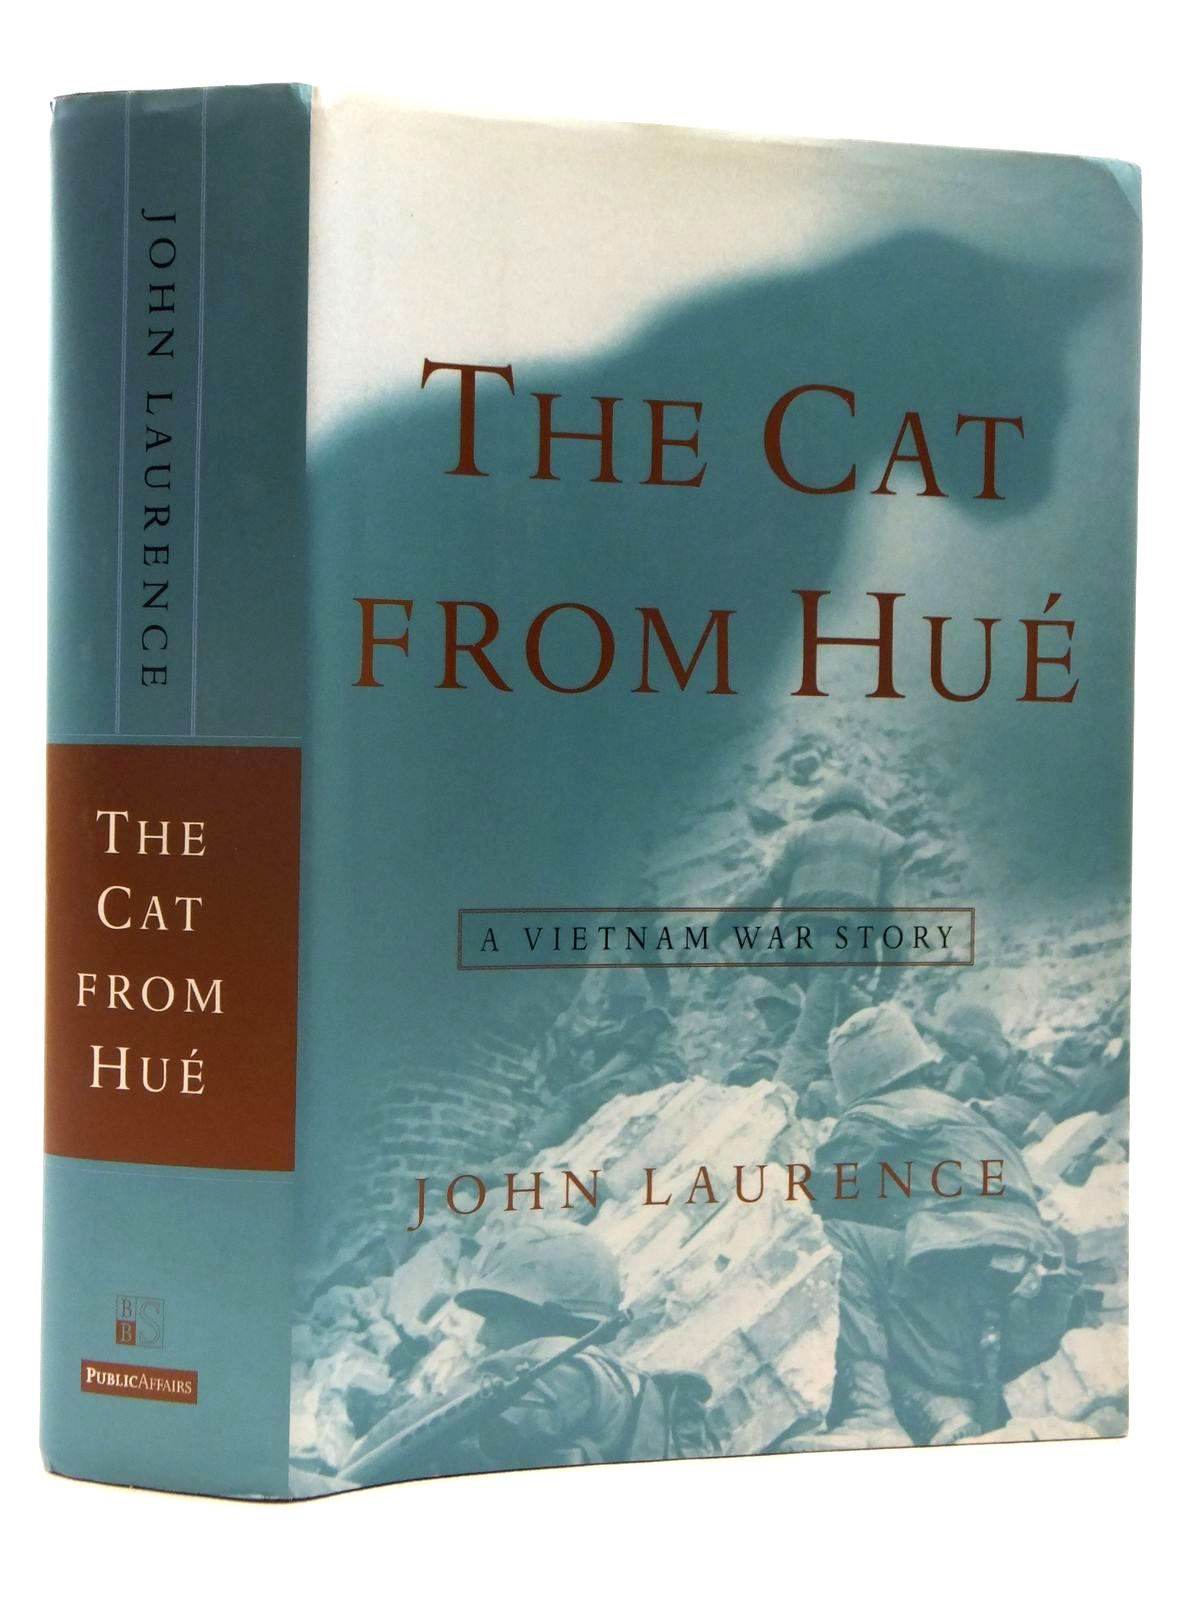 Photo of THE CAT FROM HUE A VIETNAM WAR STORY written by Laurence, John published by Publicaffairs (STOCK CODE: 1609971)  for sale by Stella & Rose's Books